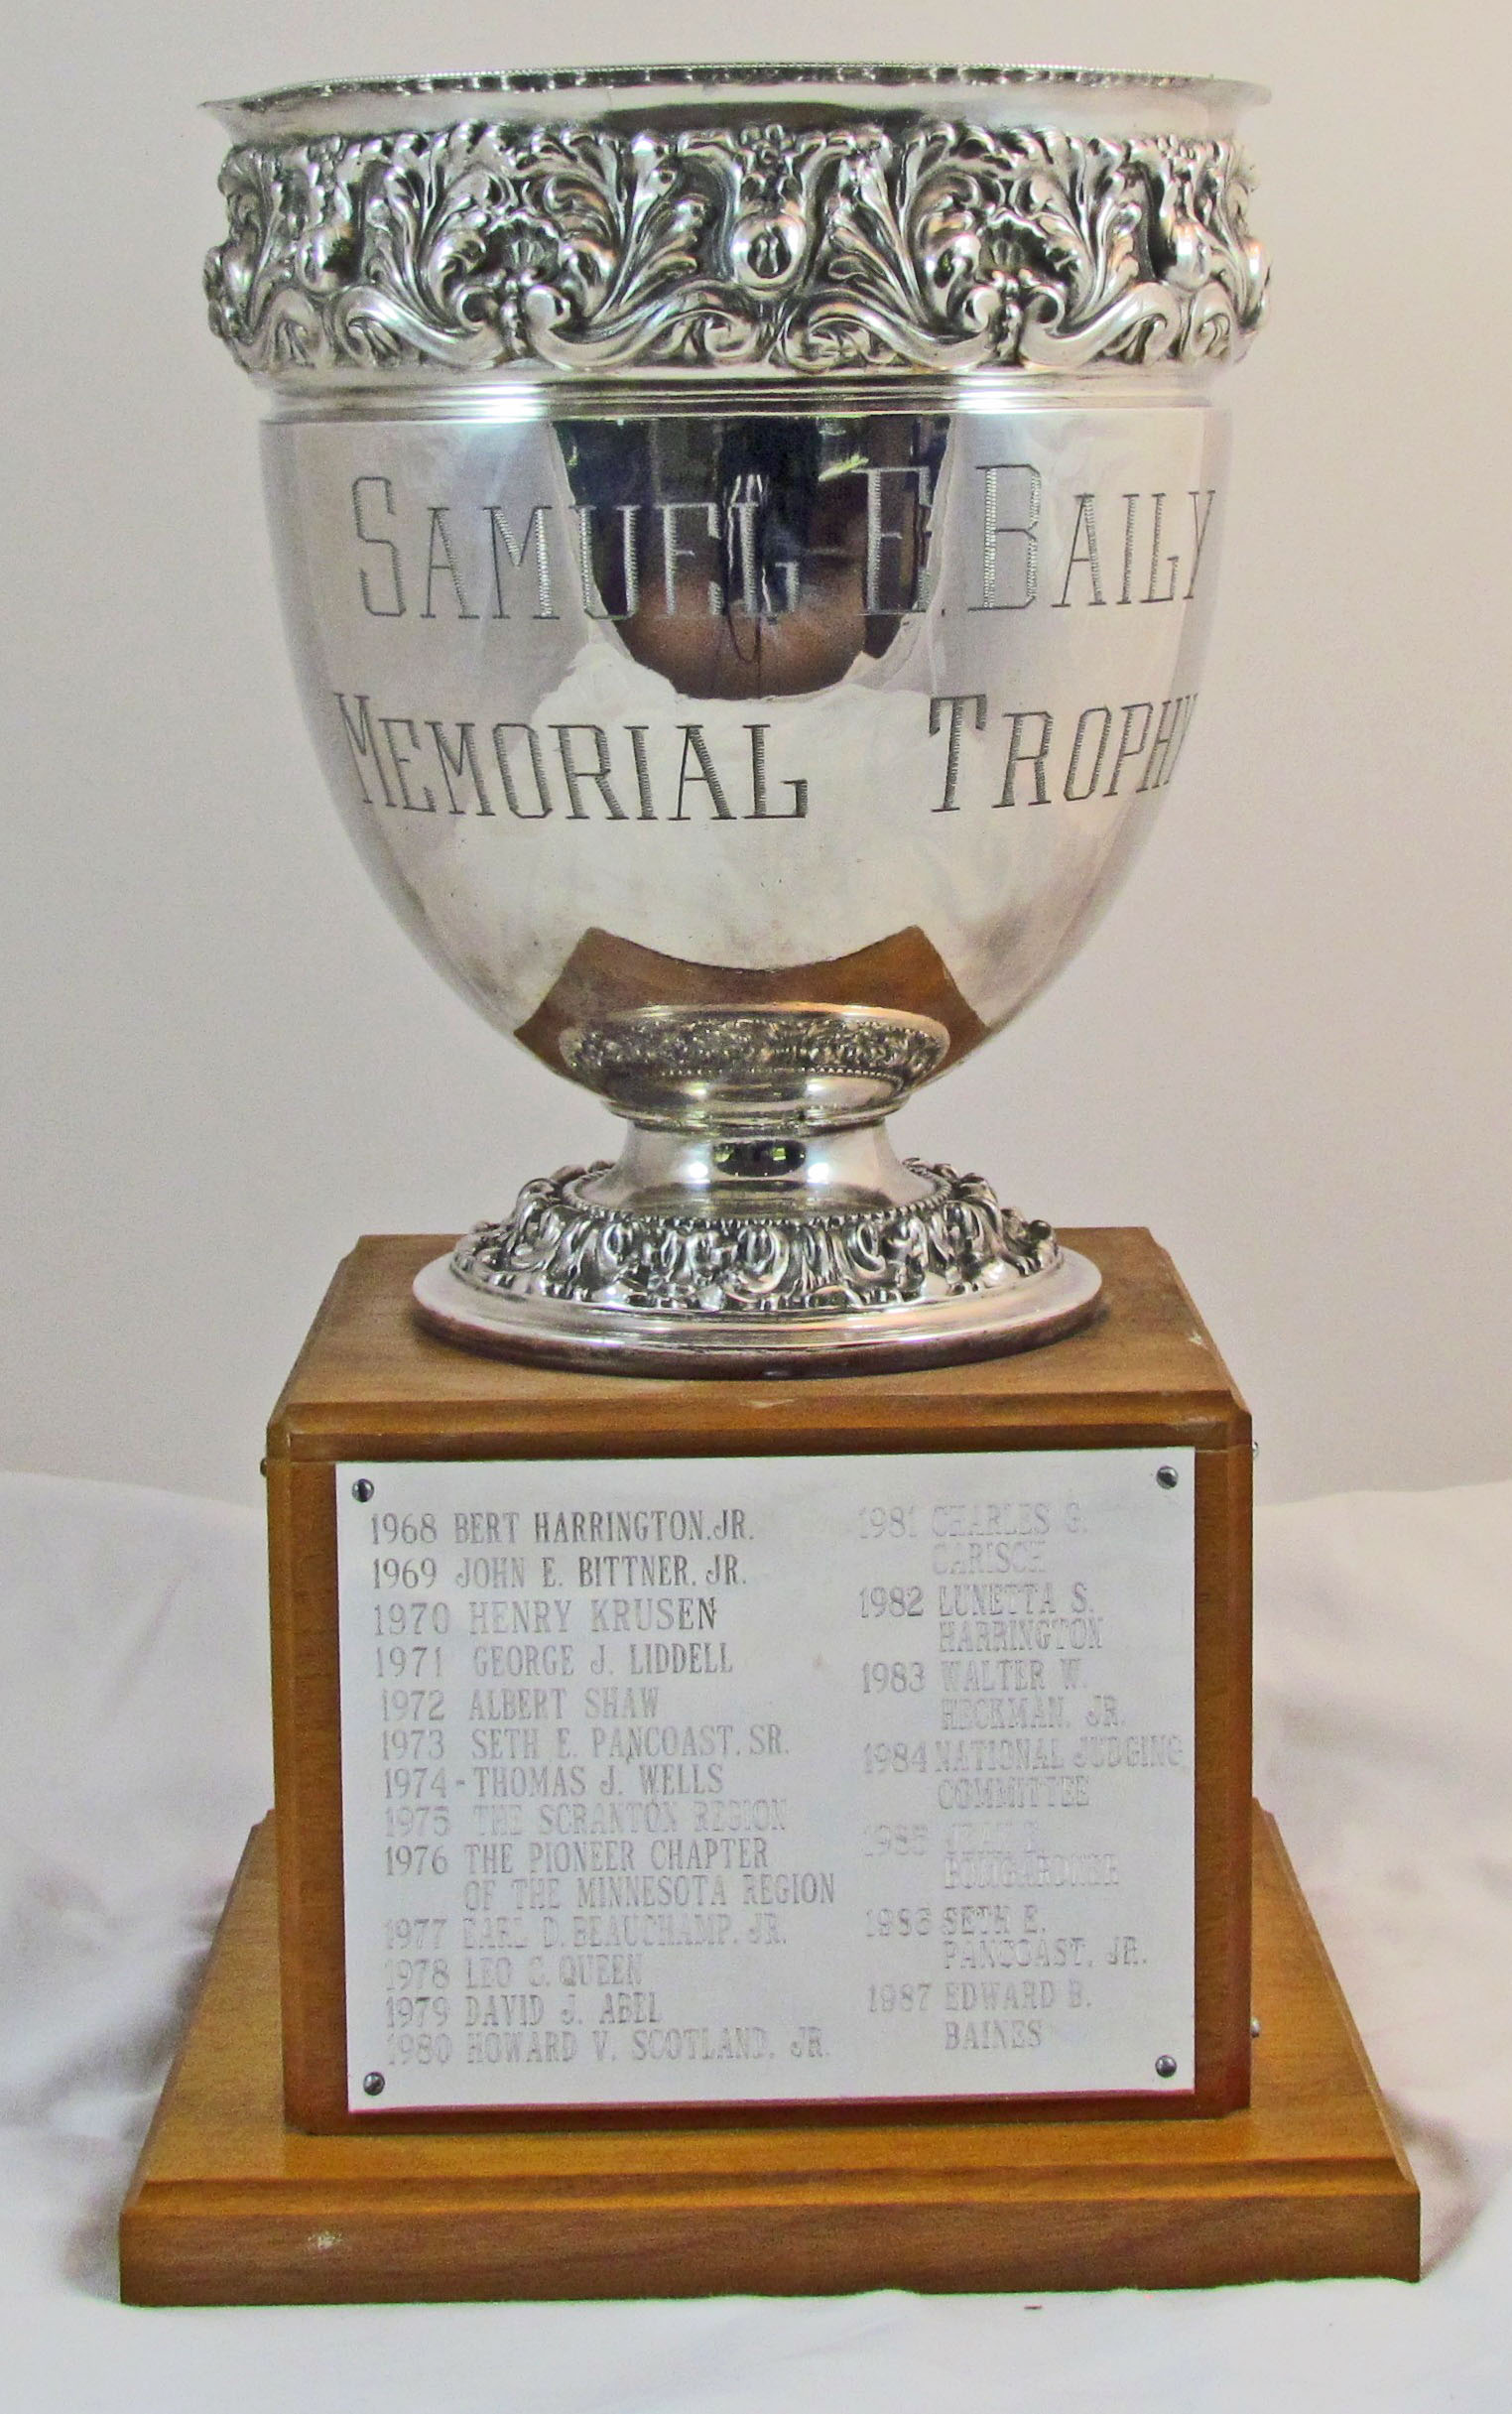 samuel e baily memorial award